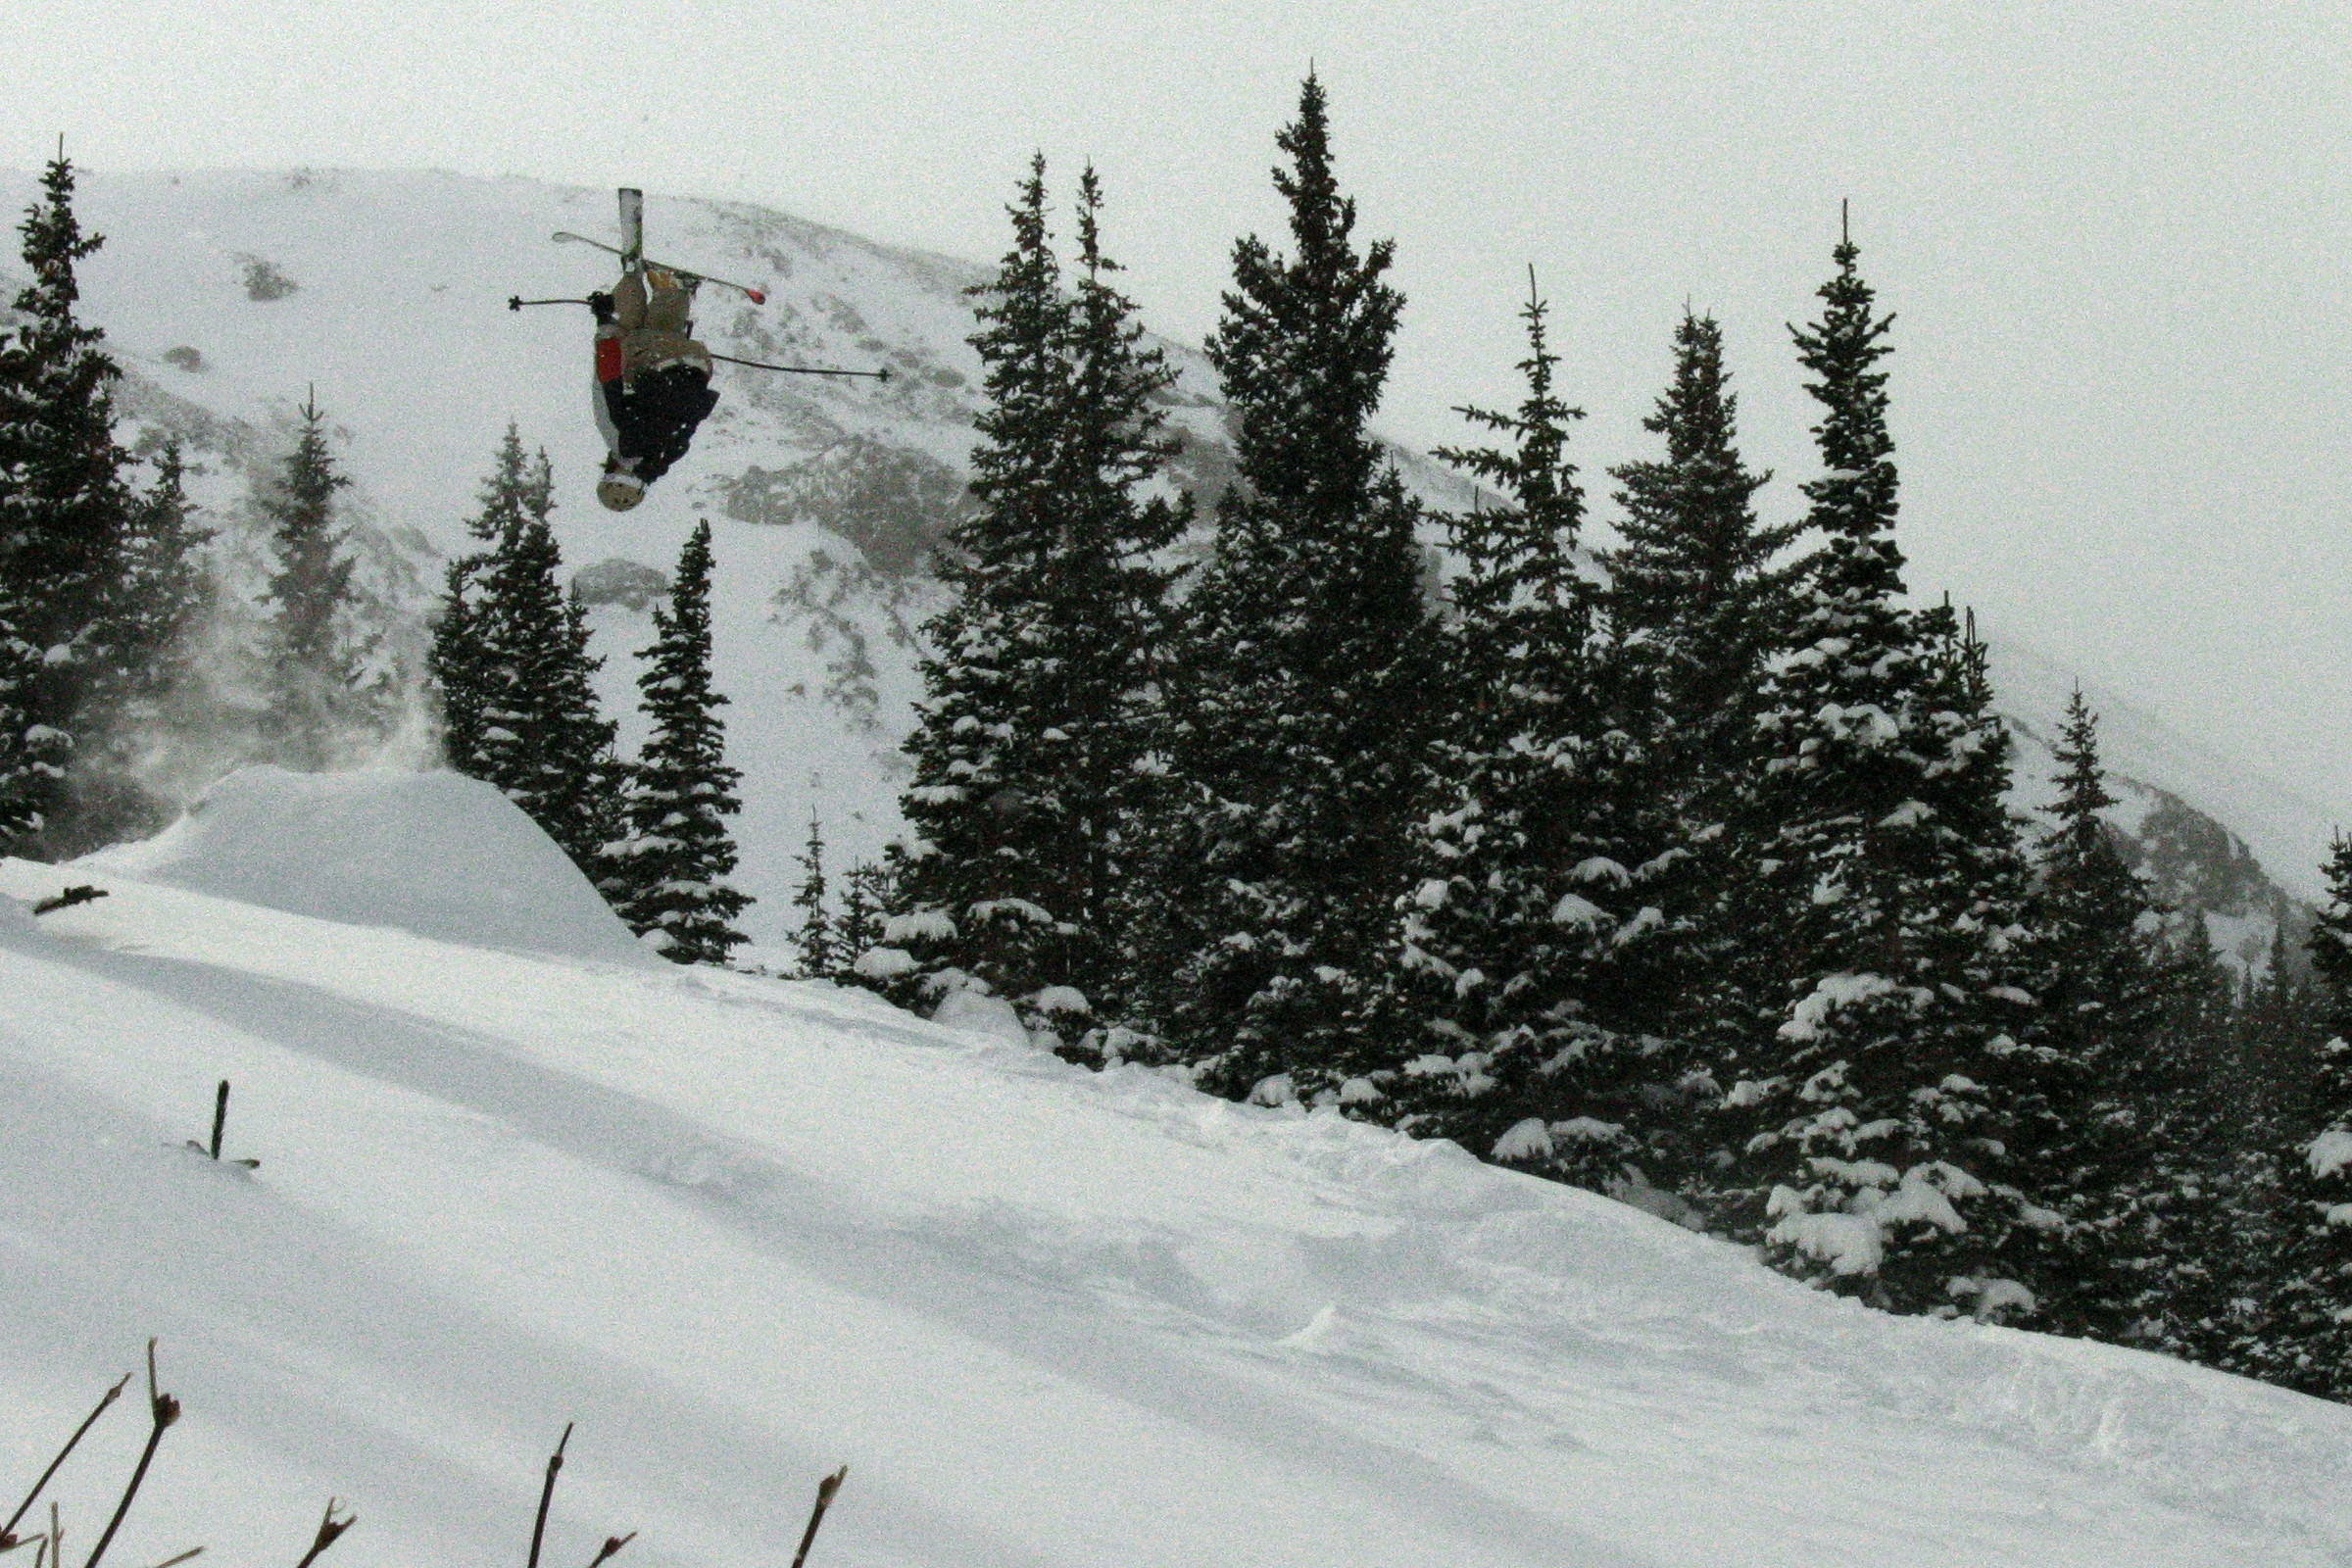 Backflips in the Backcountry at Breckenridge